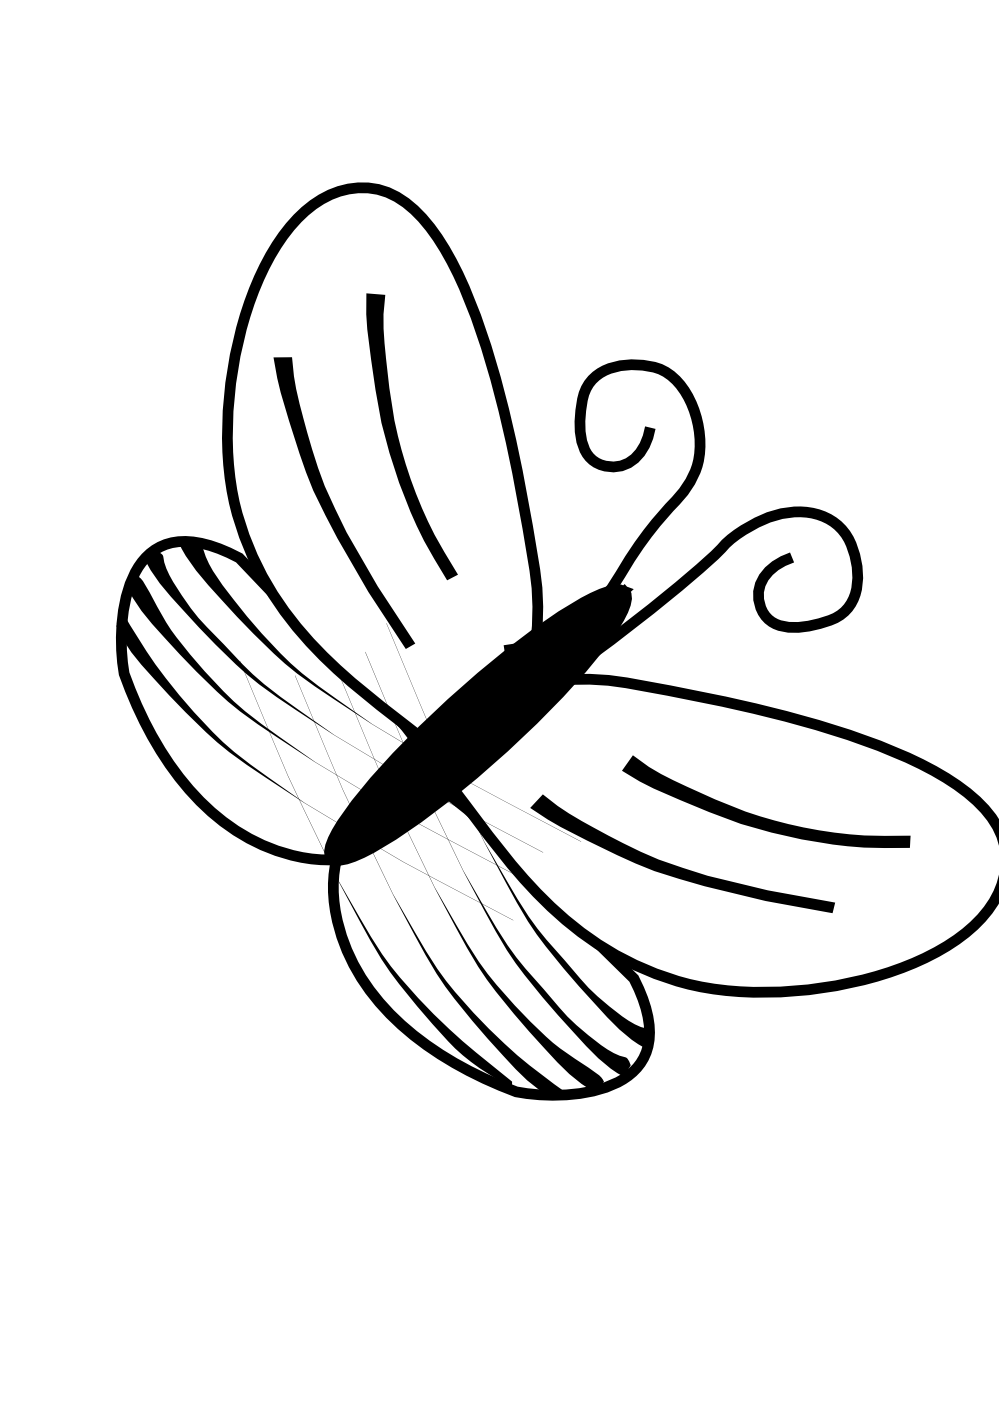 Free clipart flowers black and white free download best free 999x1413 black white flower clipart mightylinksfo